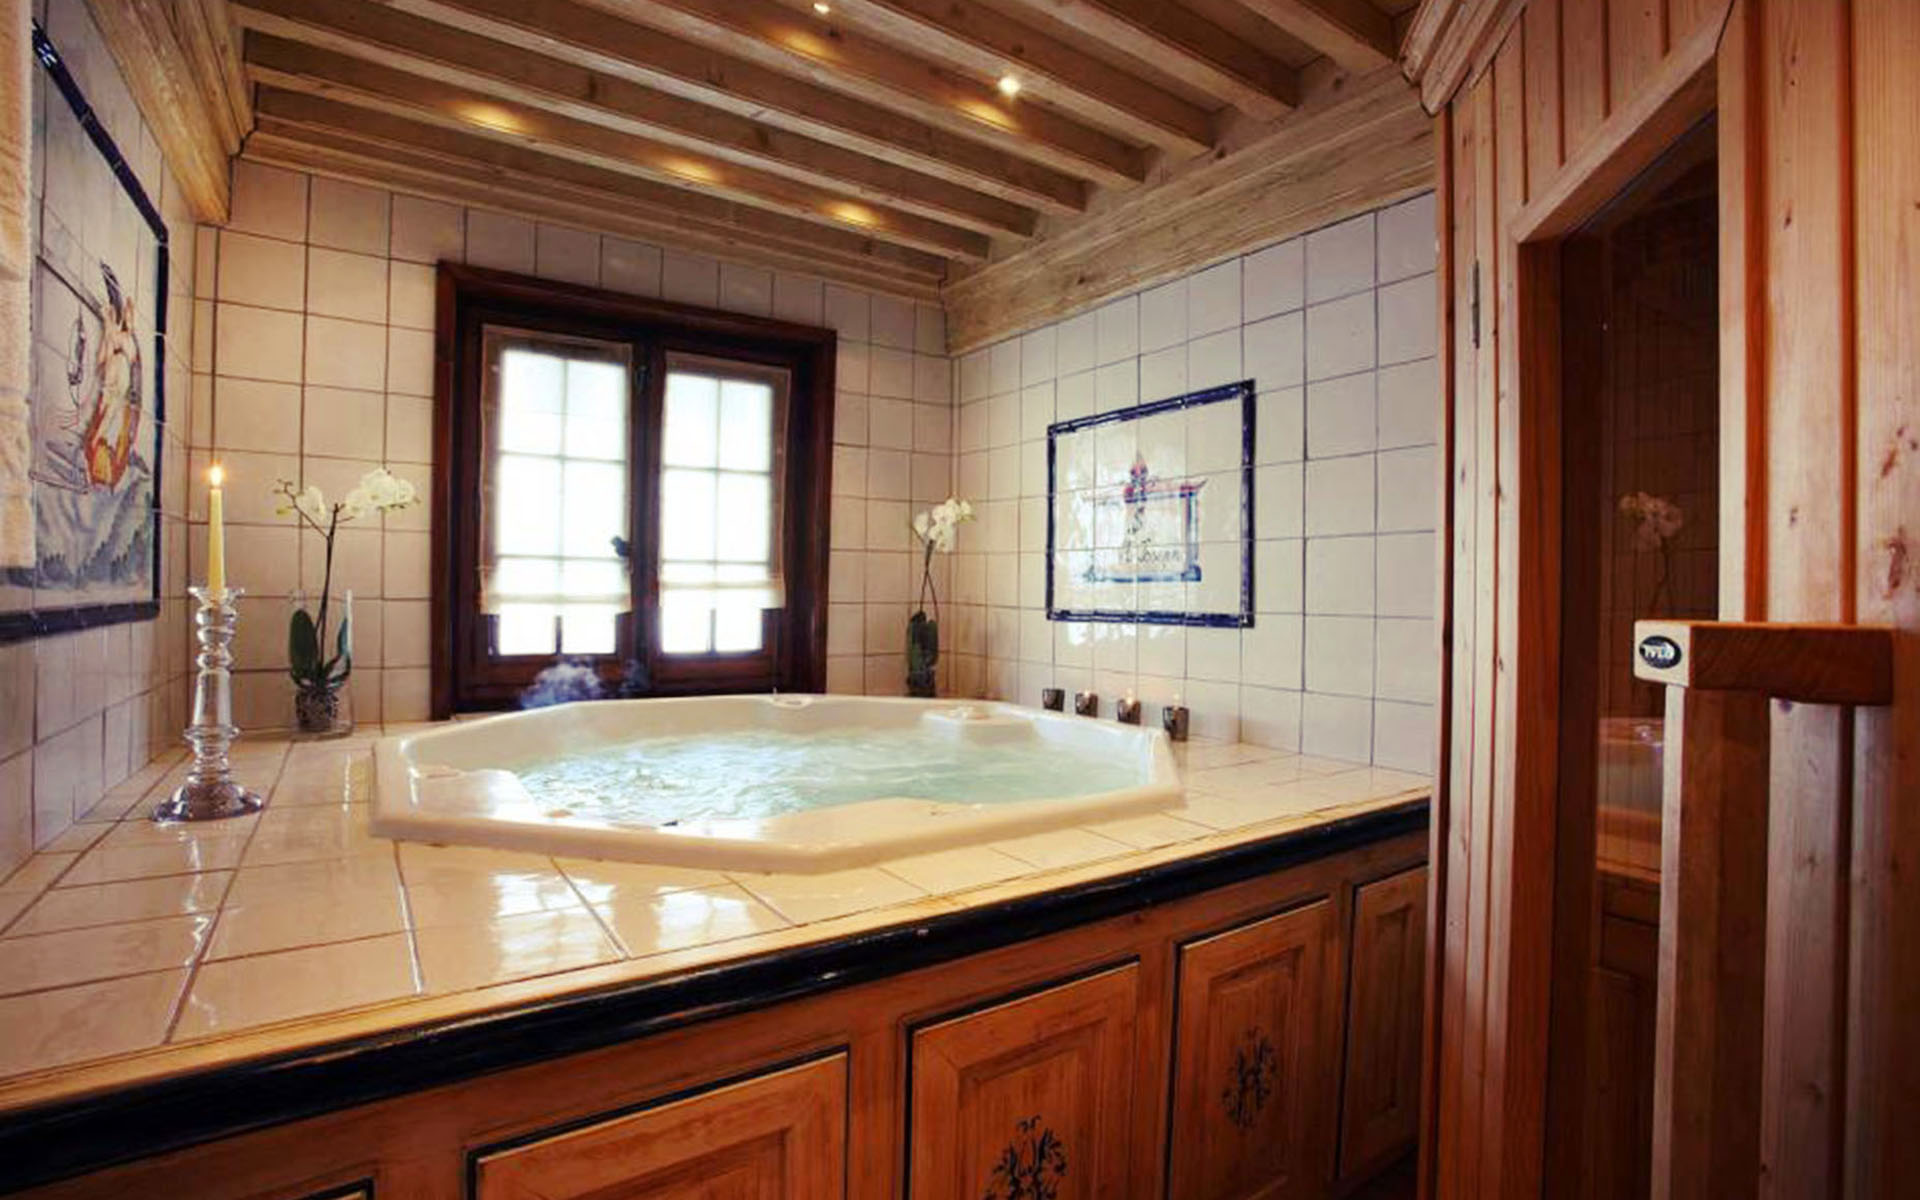 290/Hotel Saint Joseph/Chambre/Saint Amour/Saint_joseph_courchevel_appartement_saint_amour14.jpg